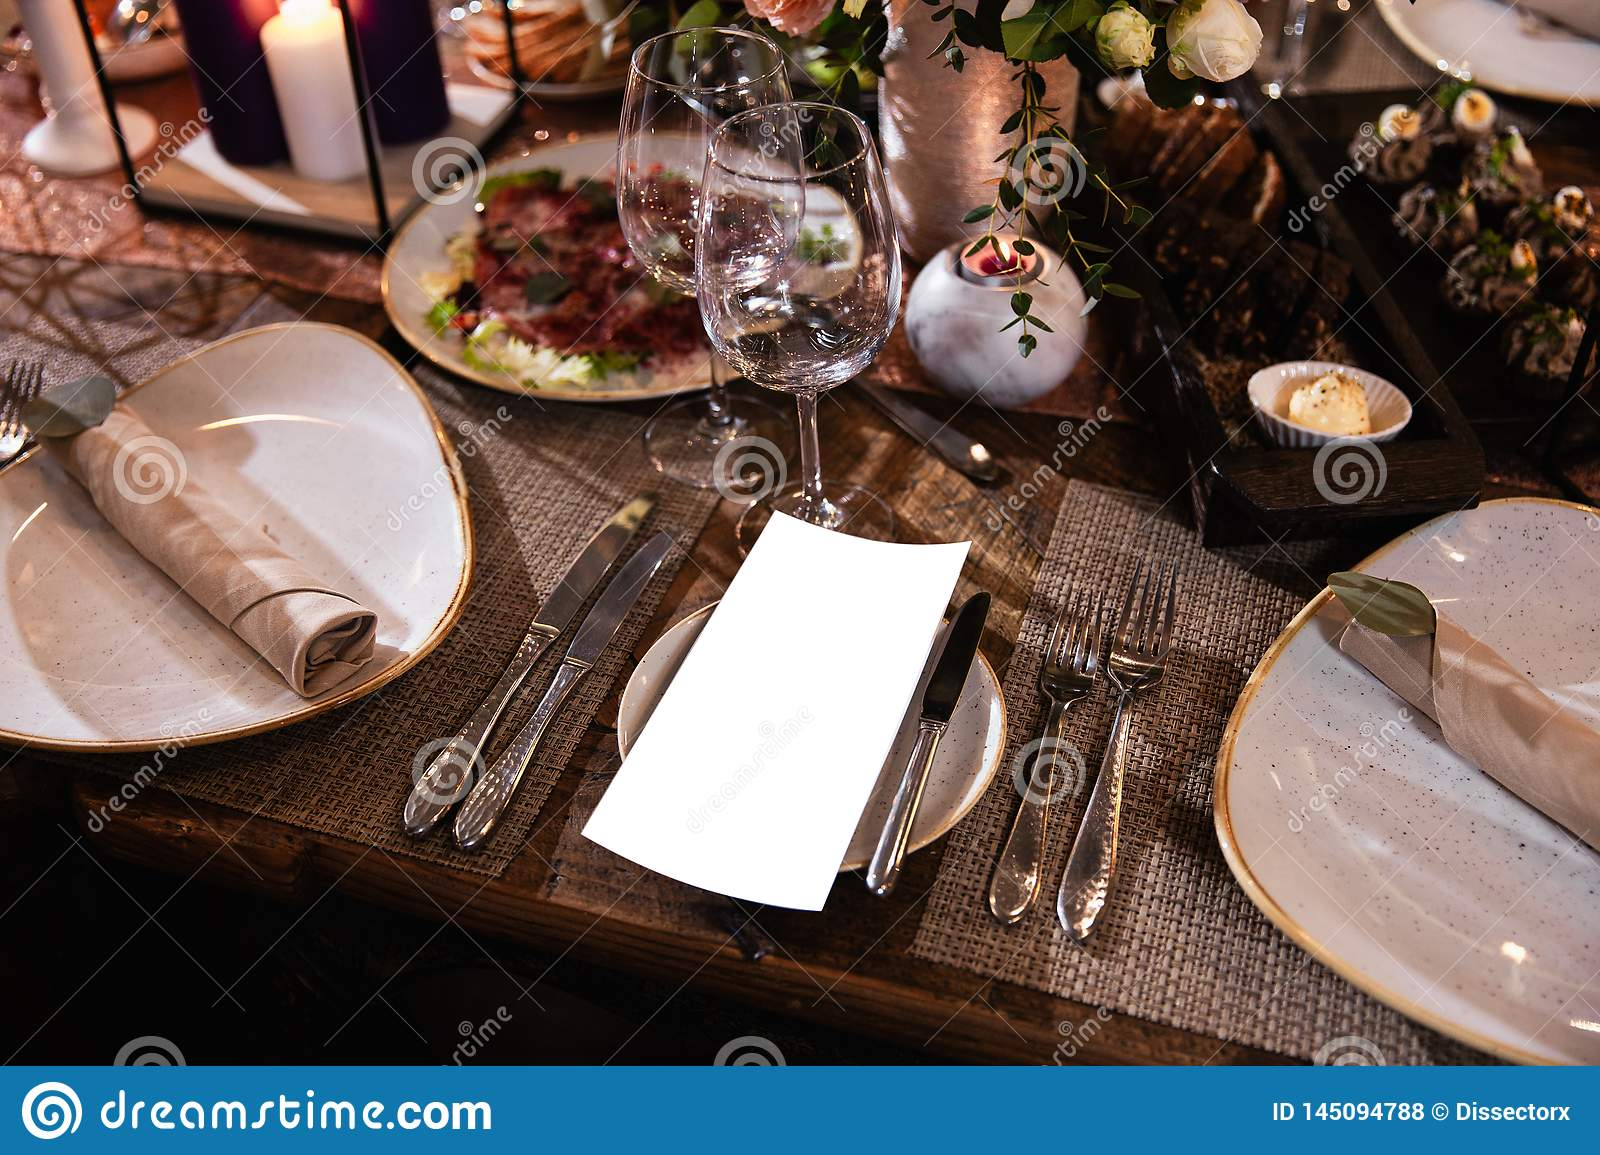 Decoration of a table at a wedding reception or birthday party - Beautiful dark colors